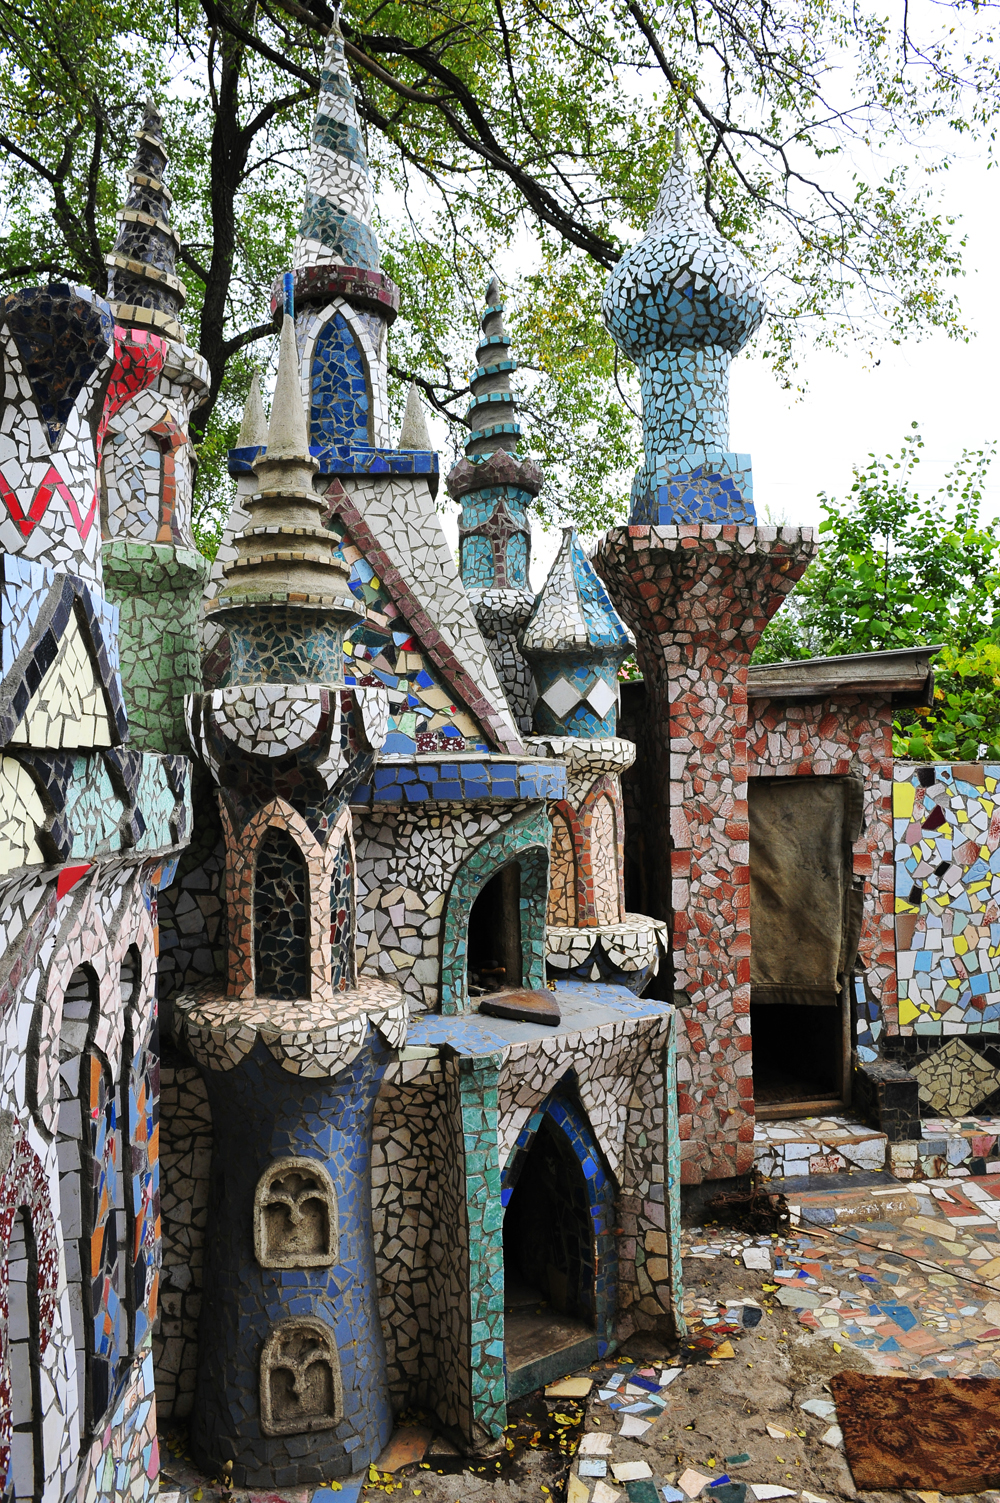 Builders in retirement Alexey Krivov and his wife Valentina Krivova from Artem towm (Primorsky Krai, Russia) put up their own castle, using various construction debris.